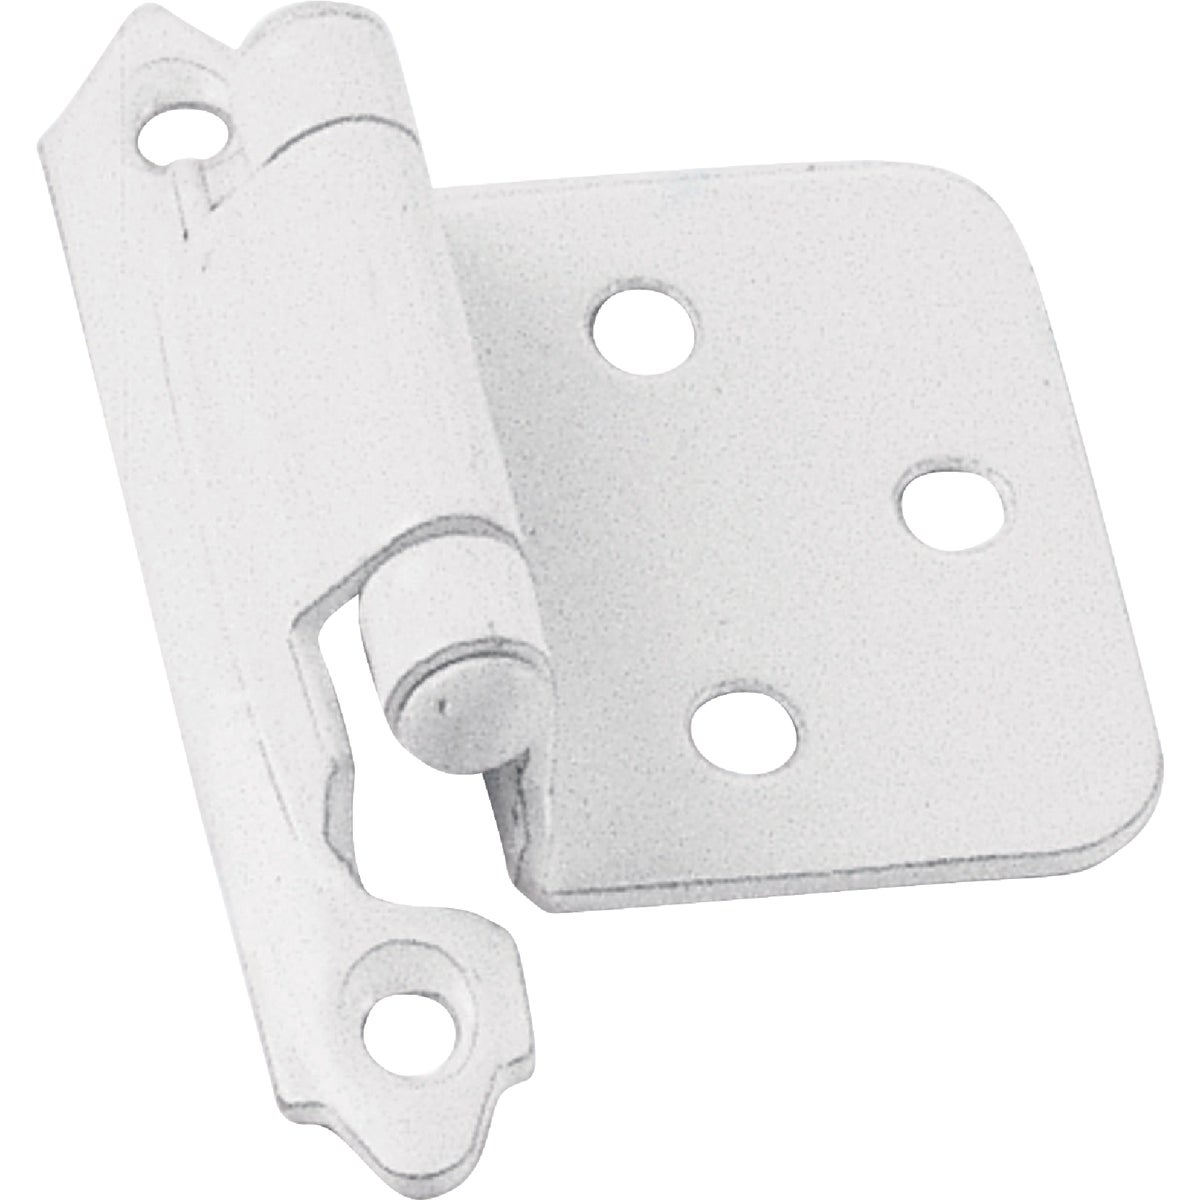 WHITE HINGE - 28742 by Laurey Co